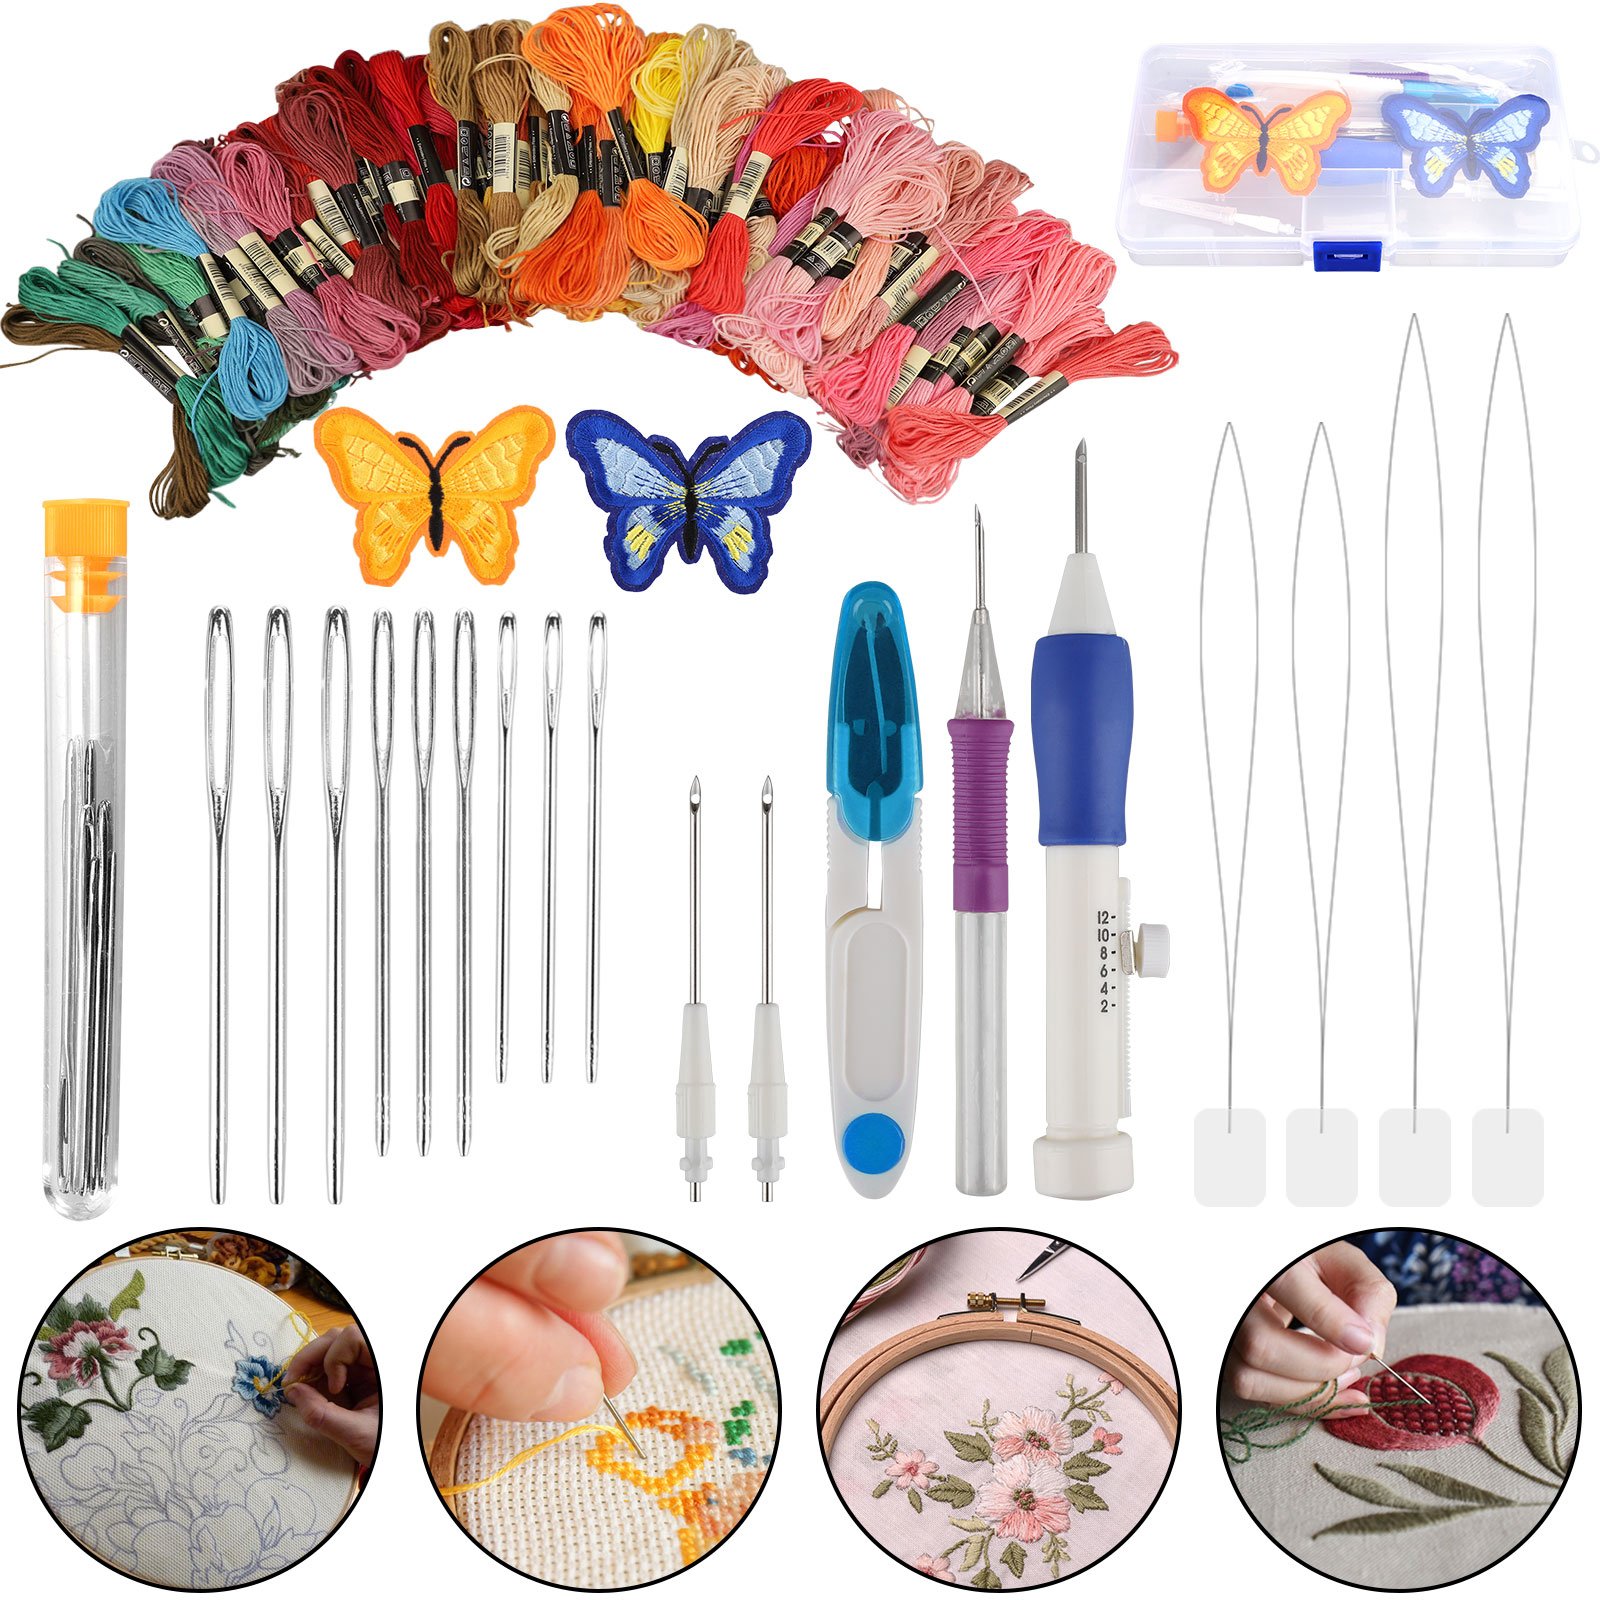 Magic Embroidery Pen Punch Needle Craft Tool Threads Set for DIY Sewing Knitting